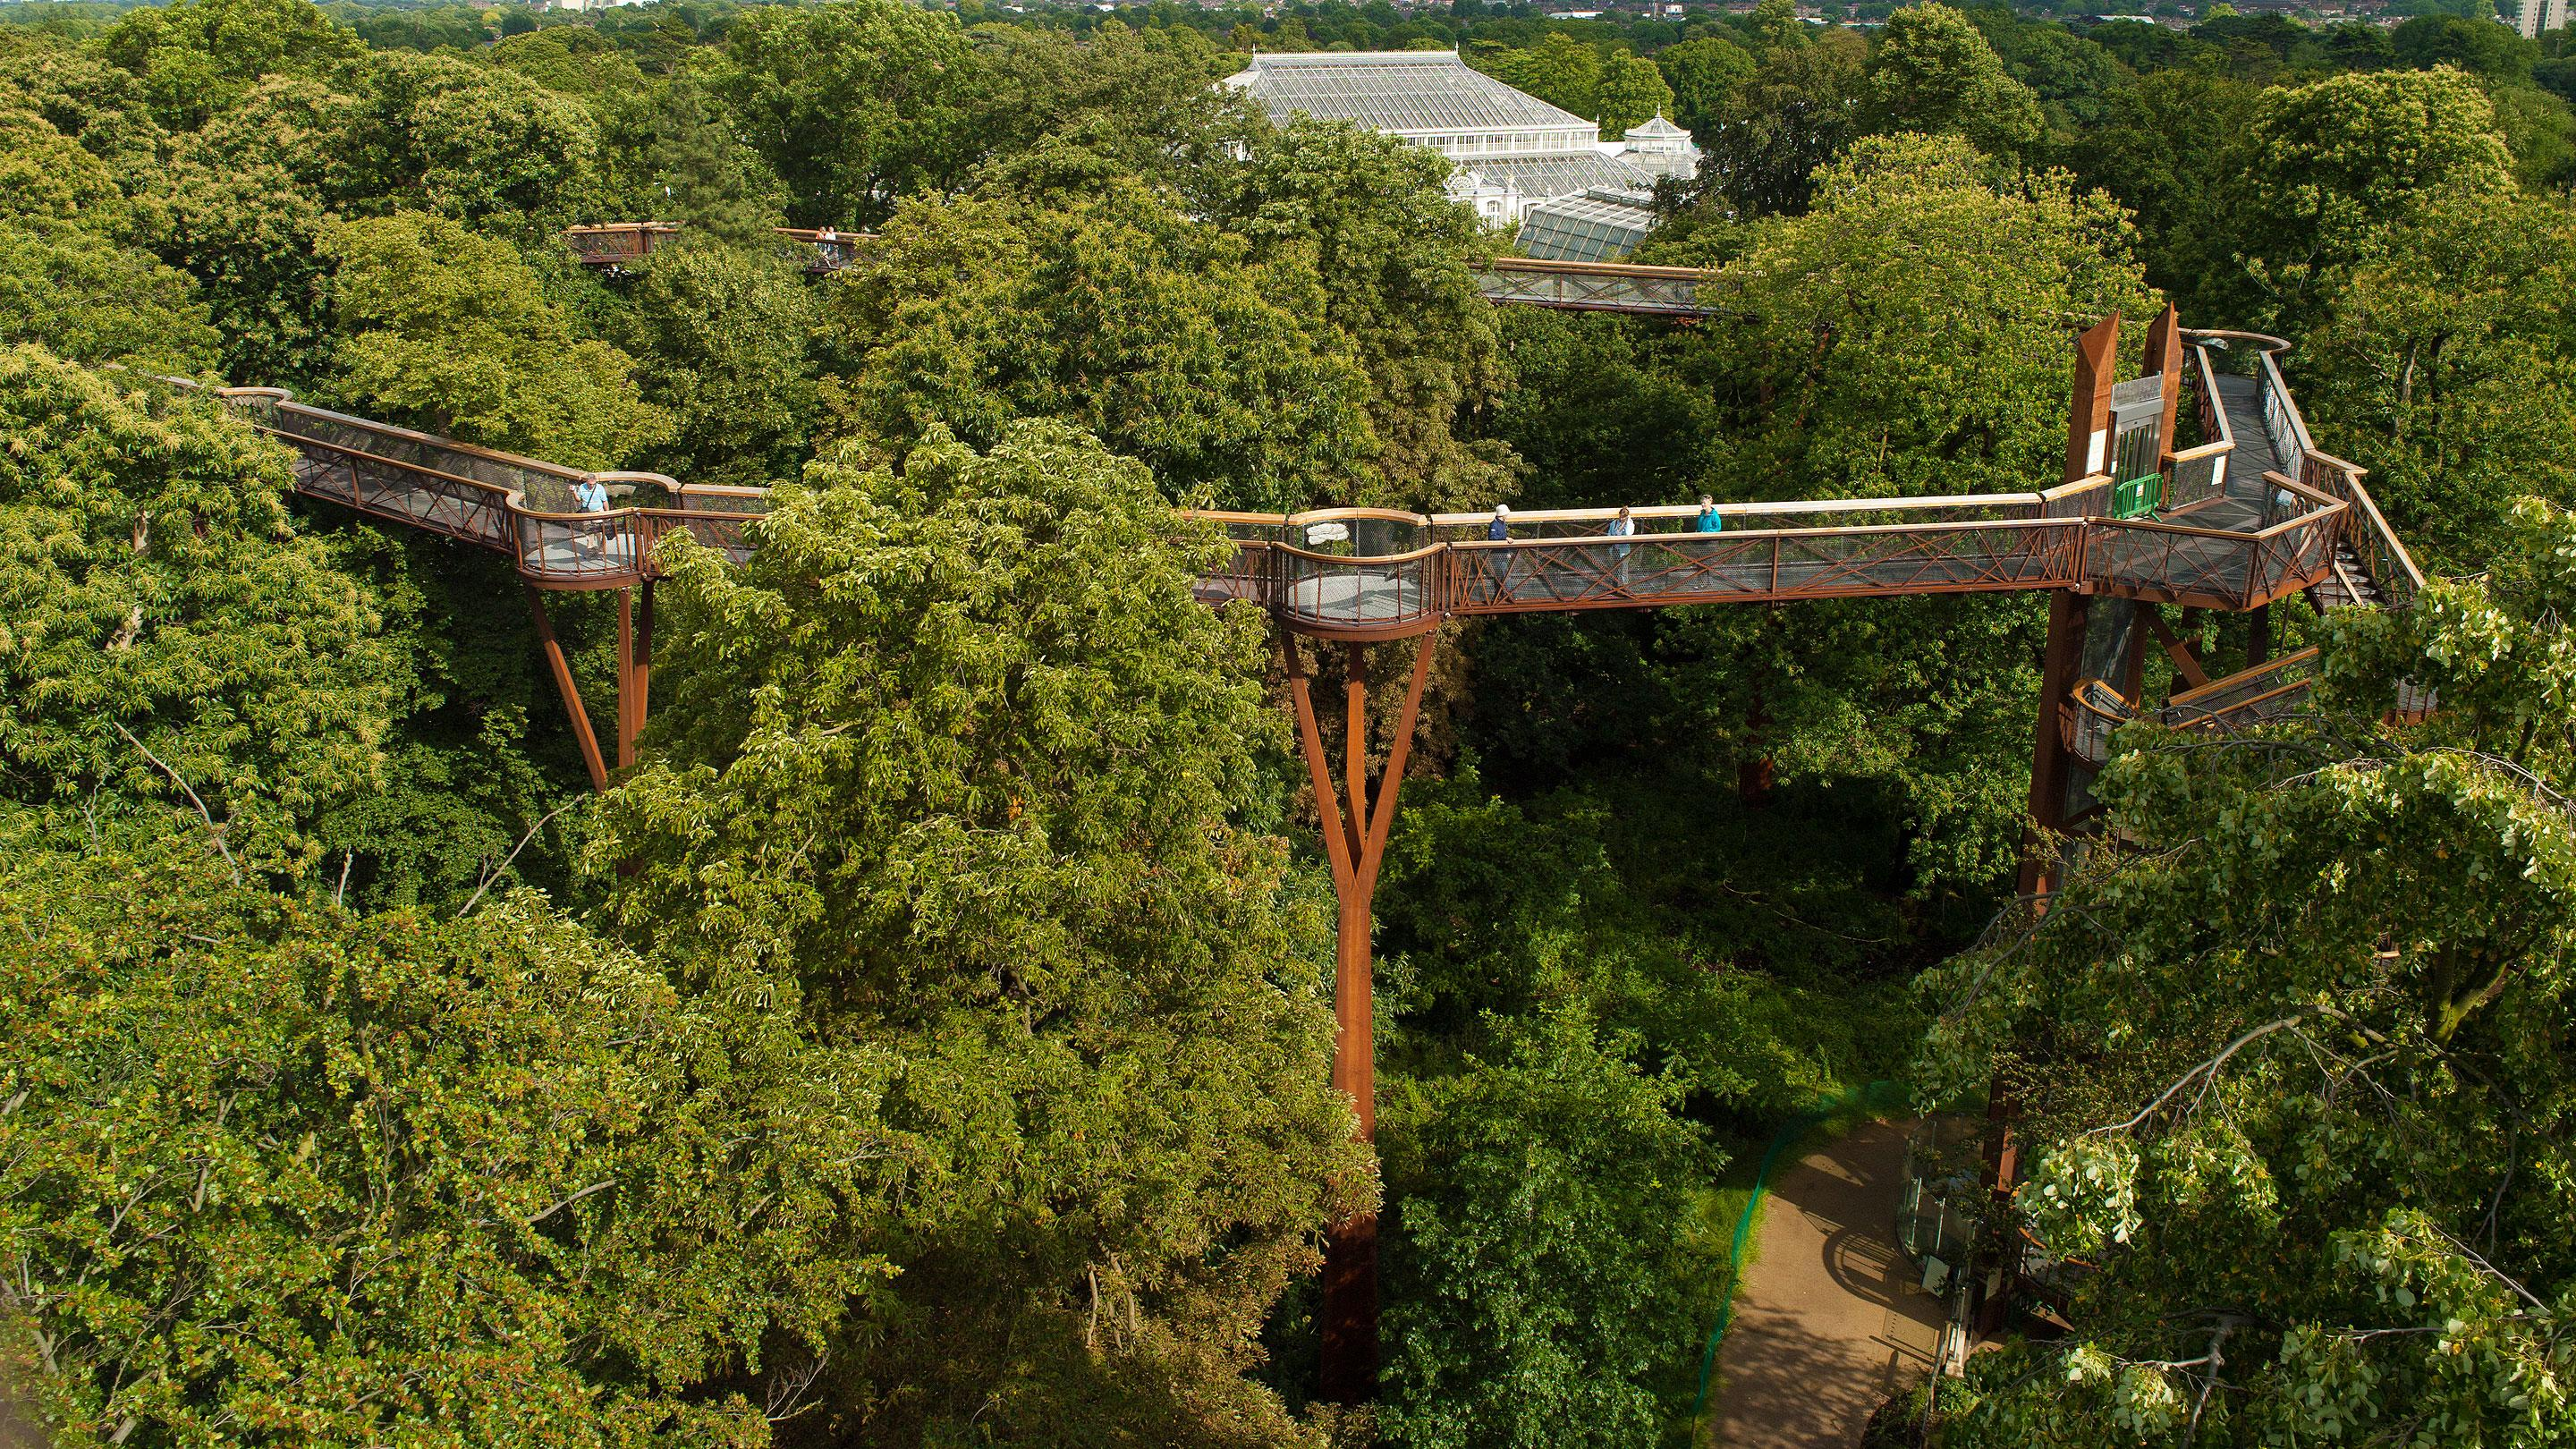 Treetop walkway kew for Garden trees london